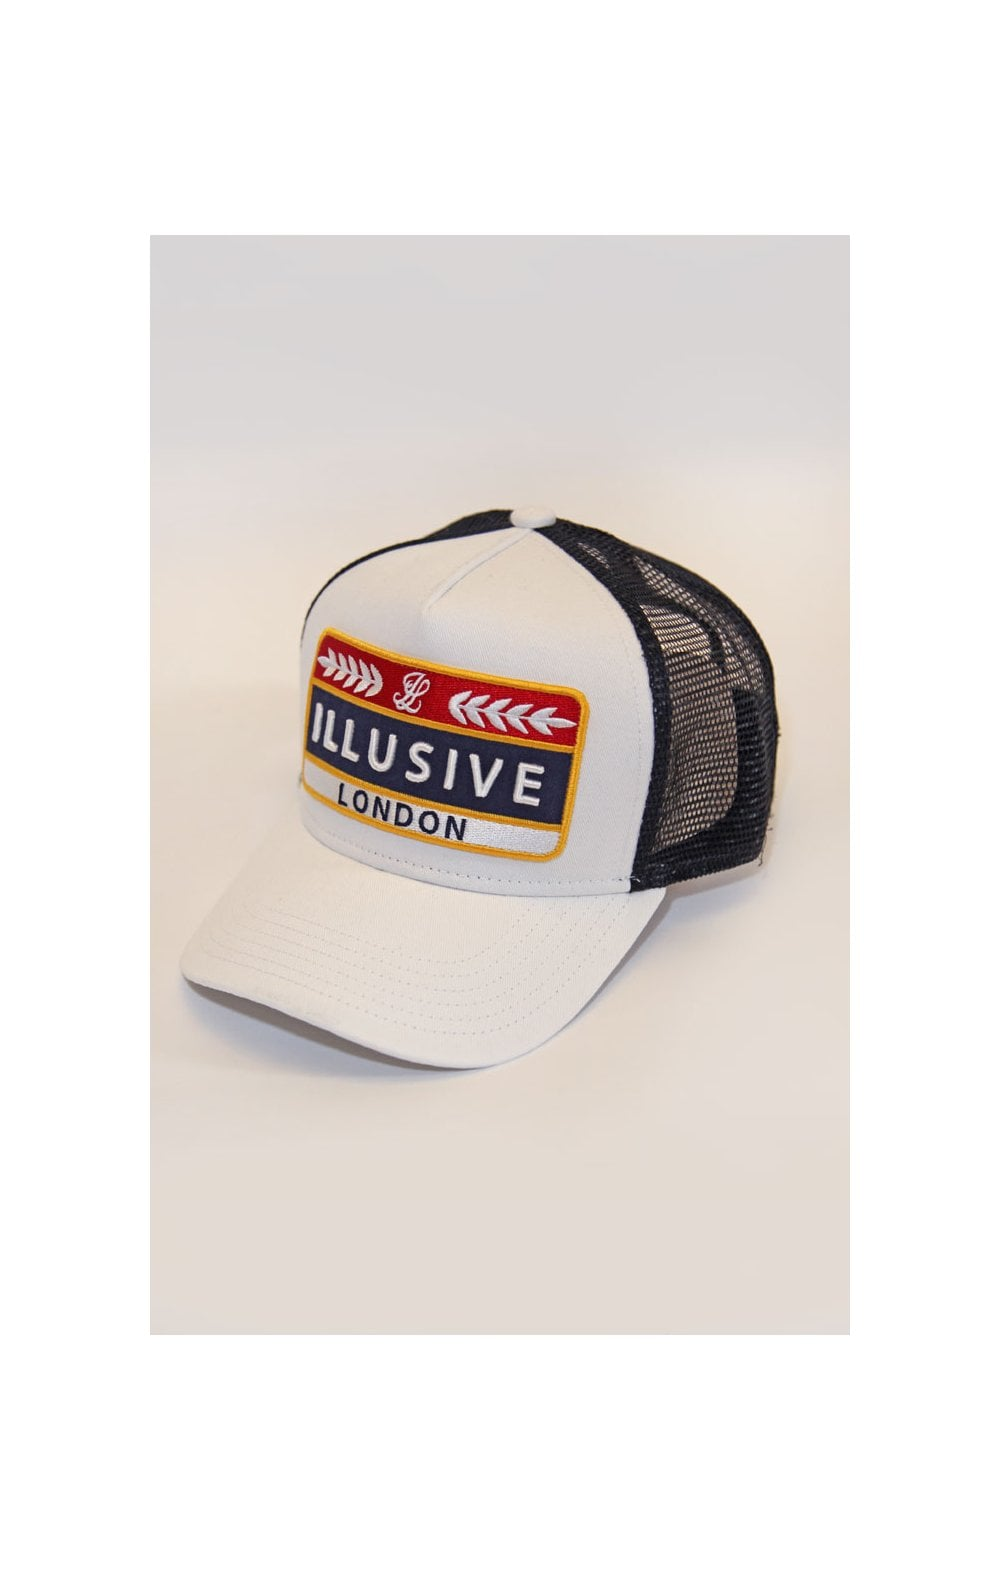 Illusive London Patch Trucker - White